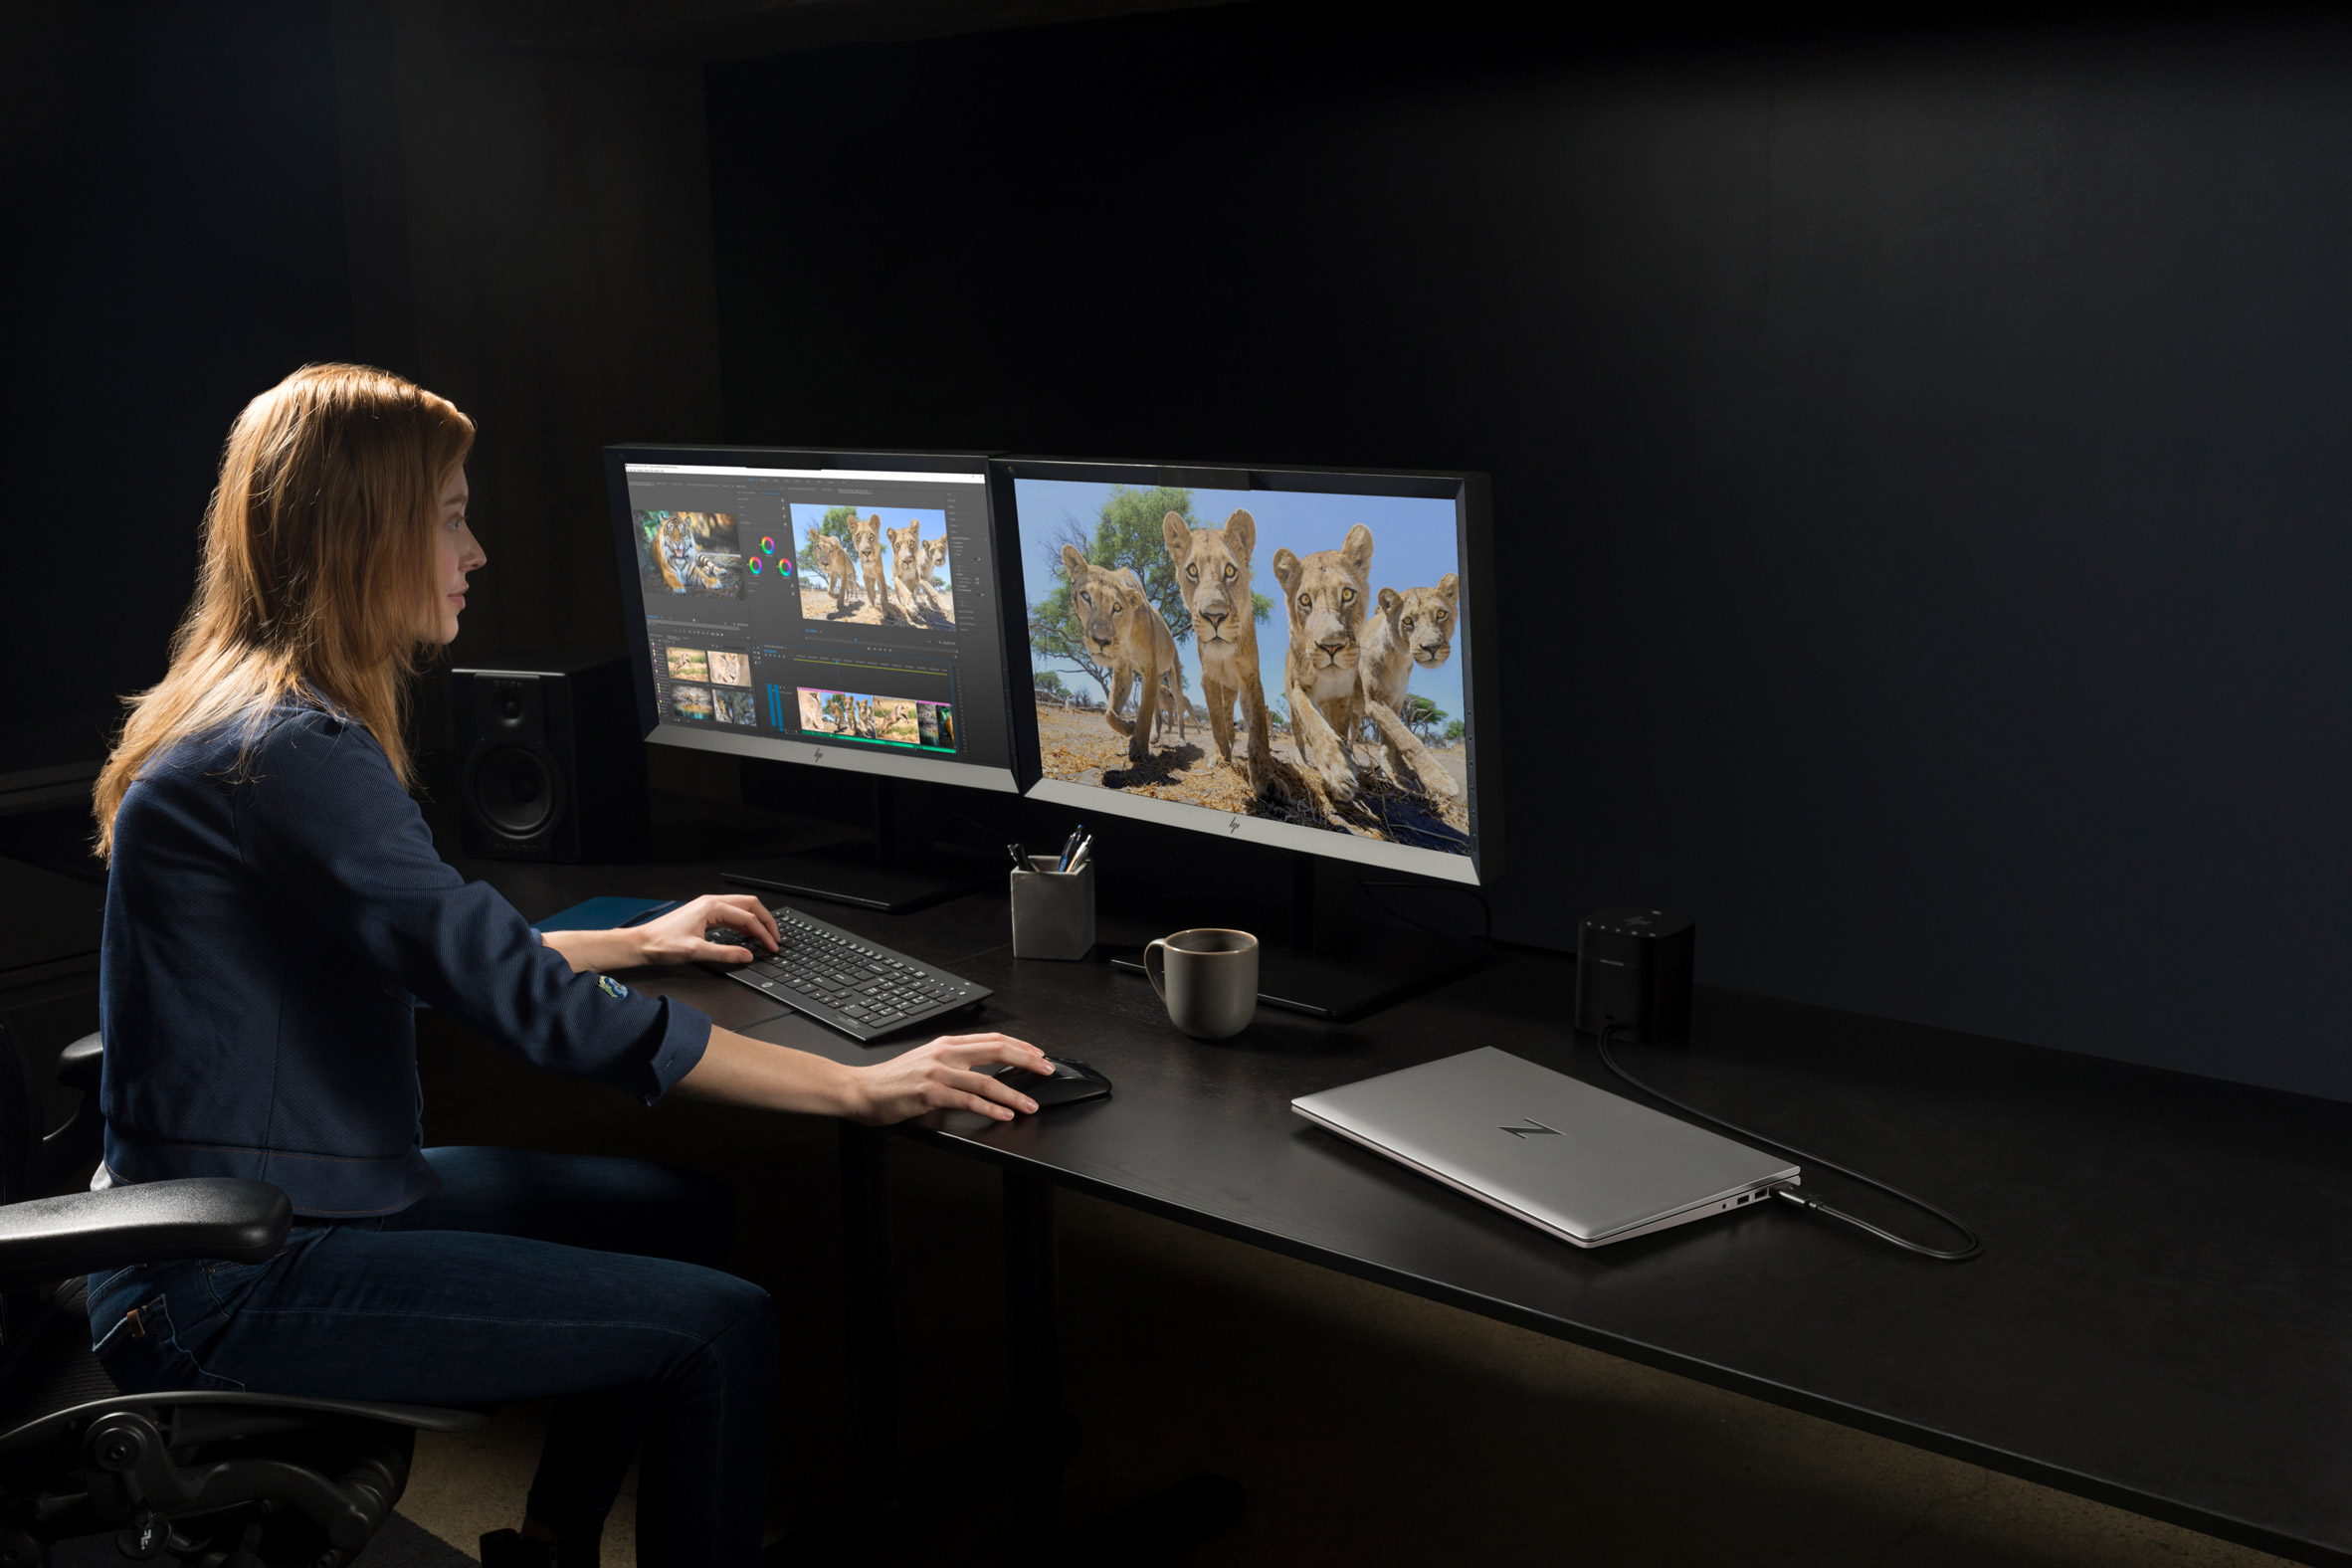 A photograph of a woman using a HP workstation